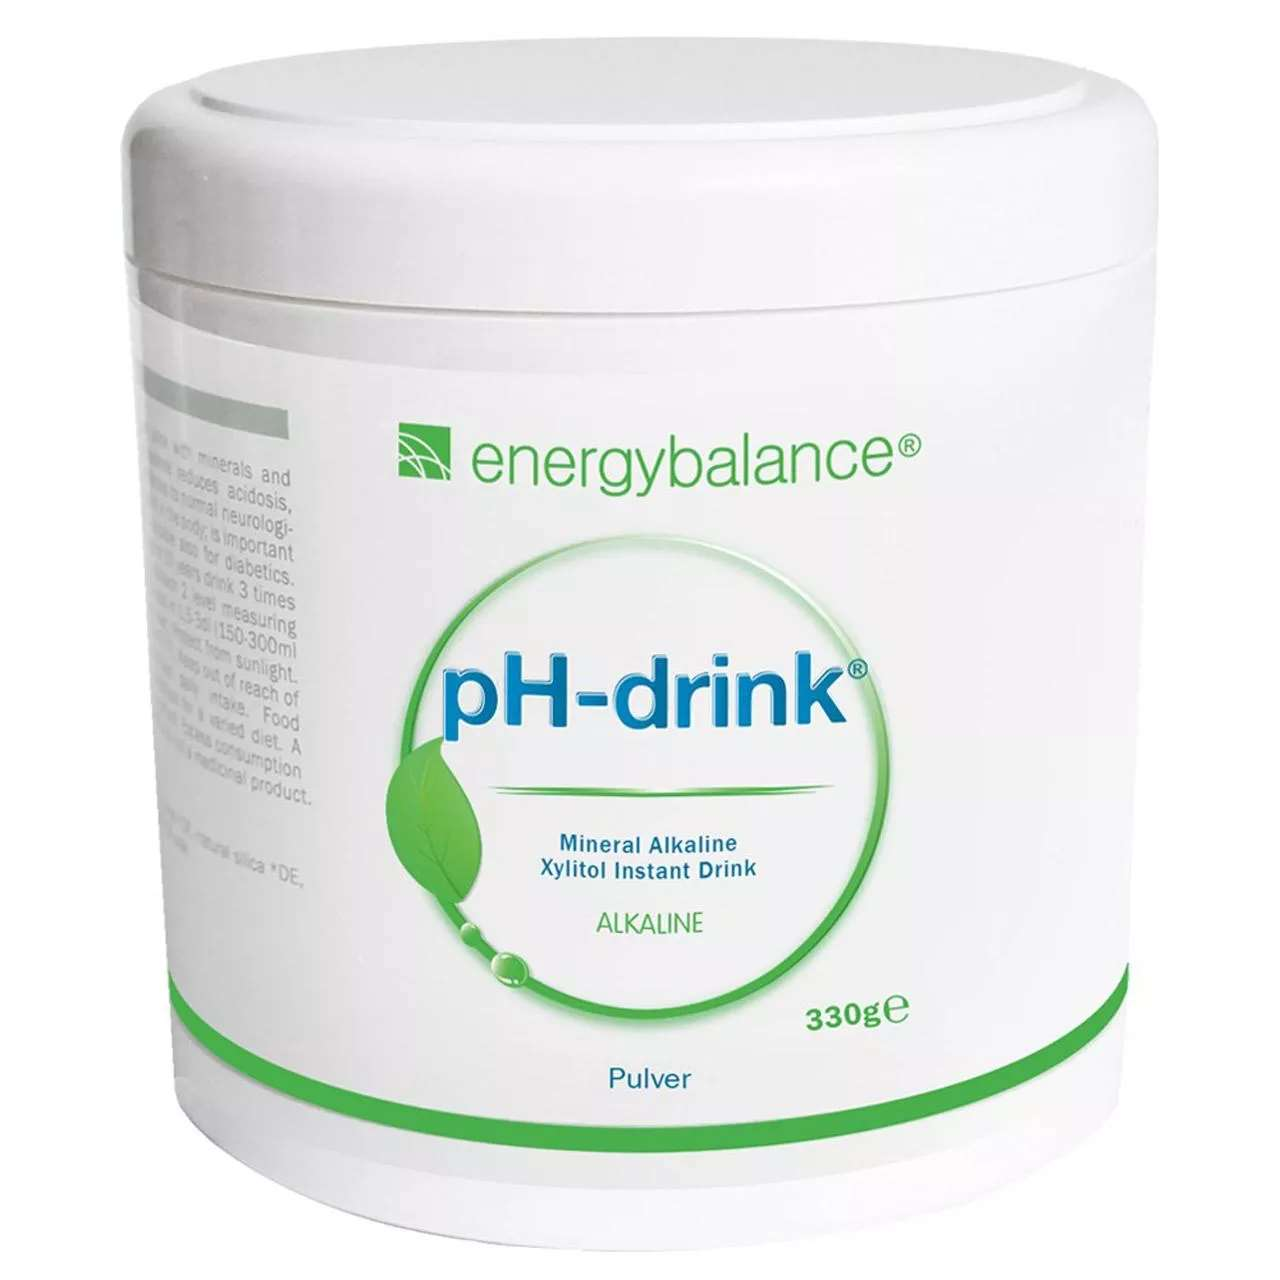 pH-drink Xylitol Basendrink, 330 g Pulver